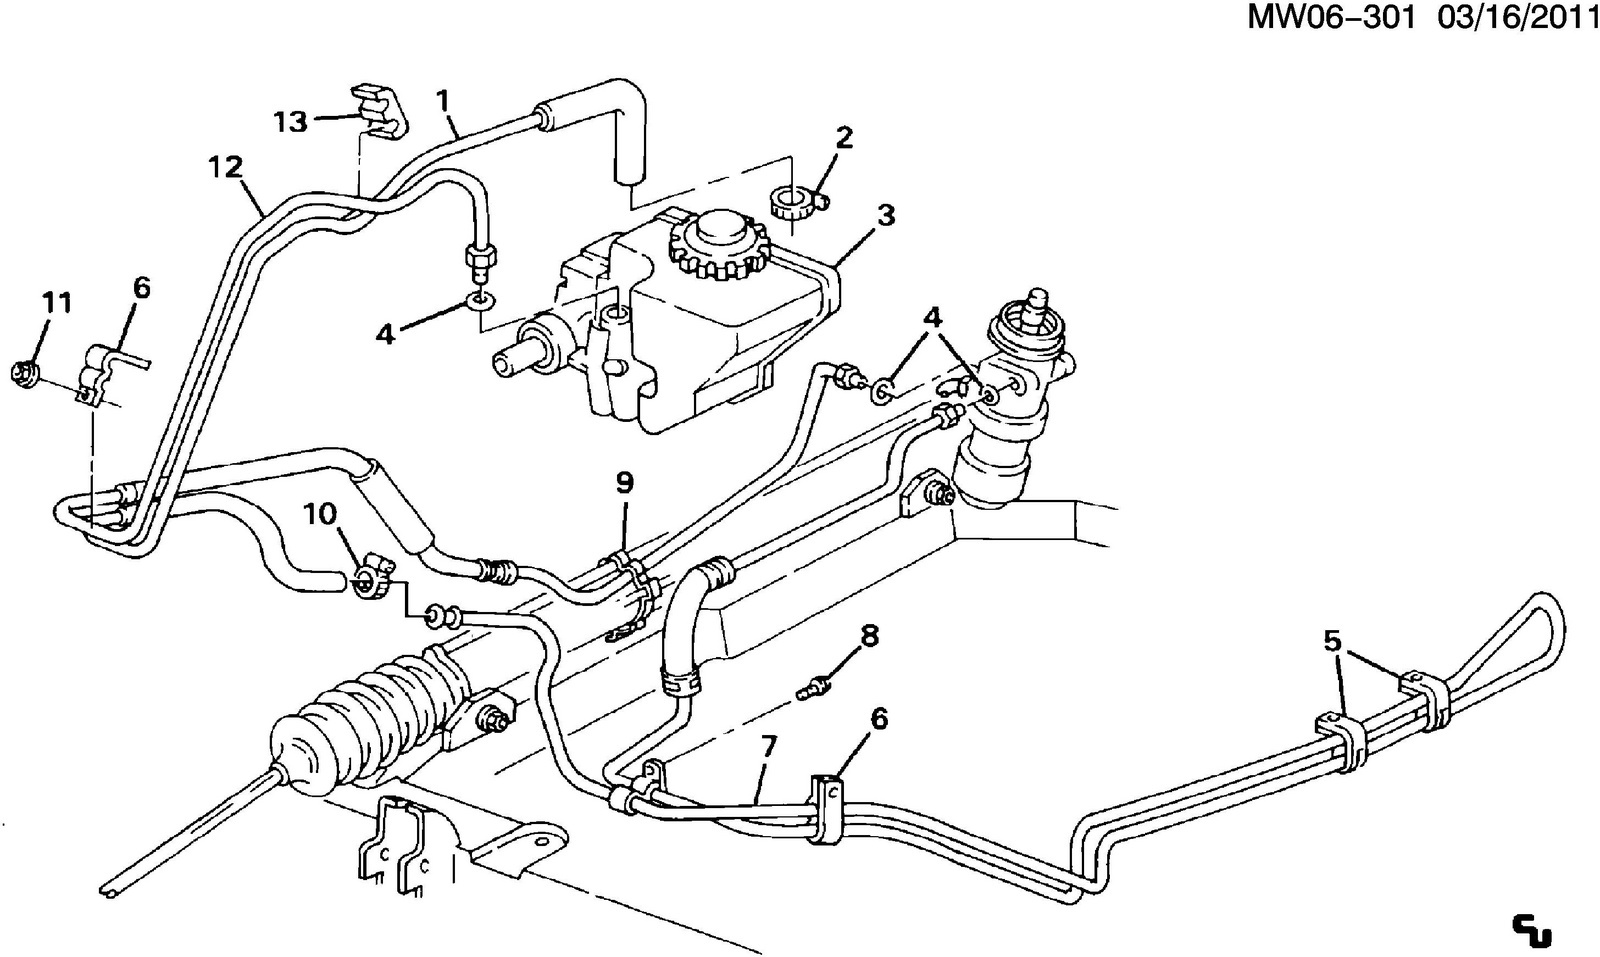 2001 Buick Lesabre Water Pump Diagram as well 1998 Oldsmobile Intrigue 3 8 Engine Diagram together with 251d2d78358d5417159f595f1e3d0f1f further 2000 Buick Century Fuel Line Diagram additionally 2001 Pontiac Grand Am Thermostat Location. on buick lesabre water pump replacement